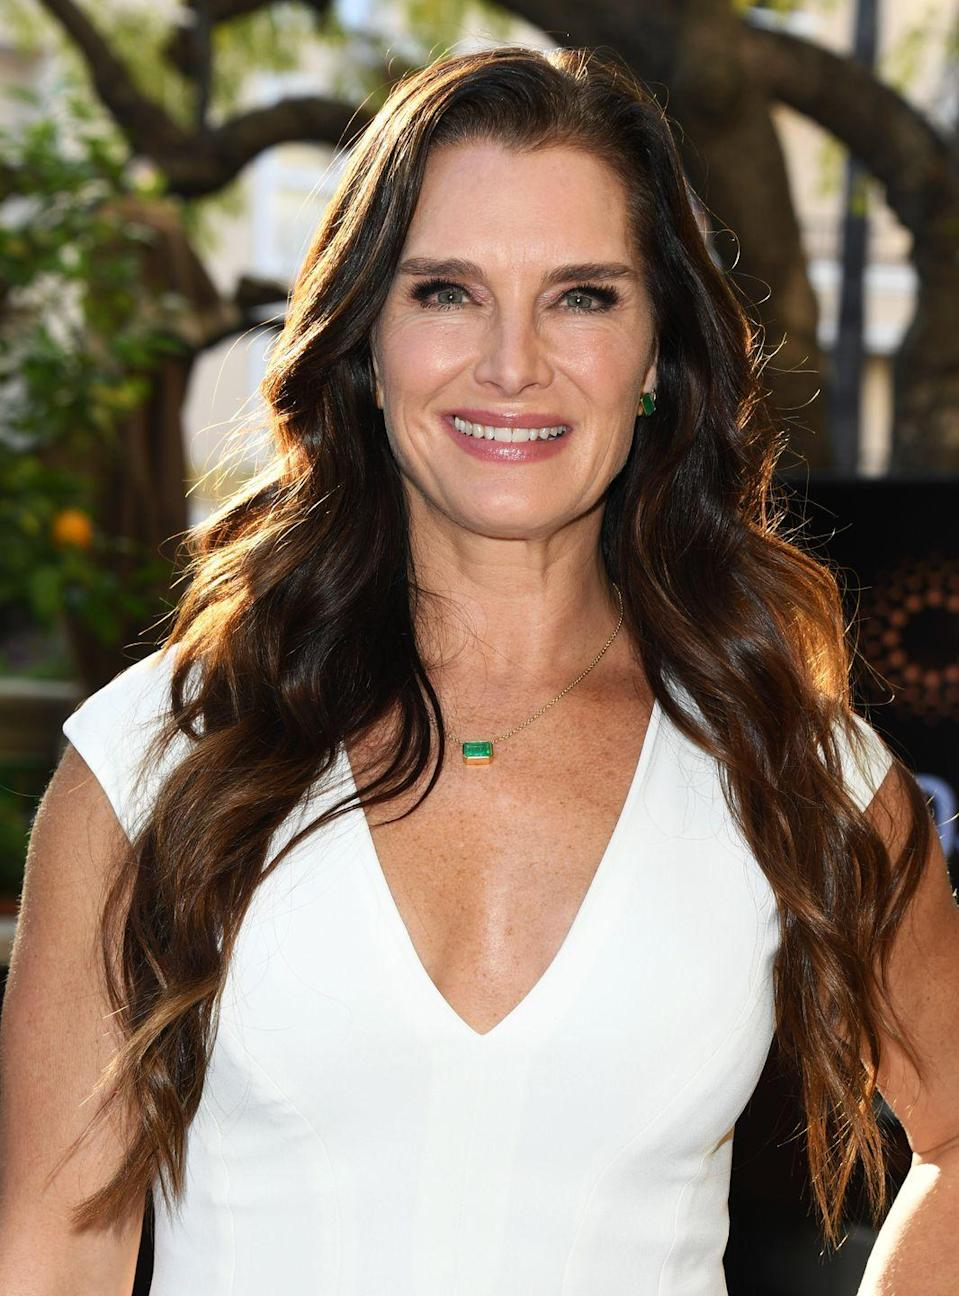 """<p>In 2019, after posting a bikini photo on Instagram and getting a lot of attention for it, Brooke explained how her daughters helped her feel more confident in herself. She told <a href=""""https://www.yahoo.com/entertainment/brooke-shields-says-daughters-are-behind-her-sexy-swimsuit-photos-223754758.html"""" data-ylk=""""slk:Yahoo Entertainment;outcm:mb_qualified_link;_E:mb_qualified_link;ct:story;"""" class=""""link rapid-noclick-resp yahoo-link""""><em>Yahoo Entertainment</em></a>, """"My daughters are always like, 'Mom, you work so hard. Why don't you ever post?' I'm like, 'It's weird.' If I'm in an ad, I can do that. I feel like it's a job, then I can do it, but to just post pictures of myself. … My two daughters are like, 'Mom, it's good for you to be seen like this. You look good in your bathing suit,' and they've given me such confidence to sort of be a little bit more of an exhibitionist."""" </p>"""